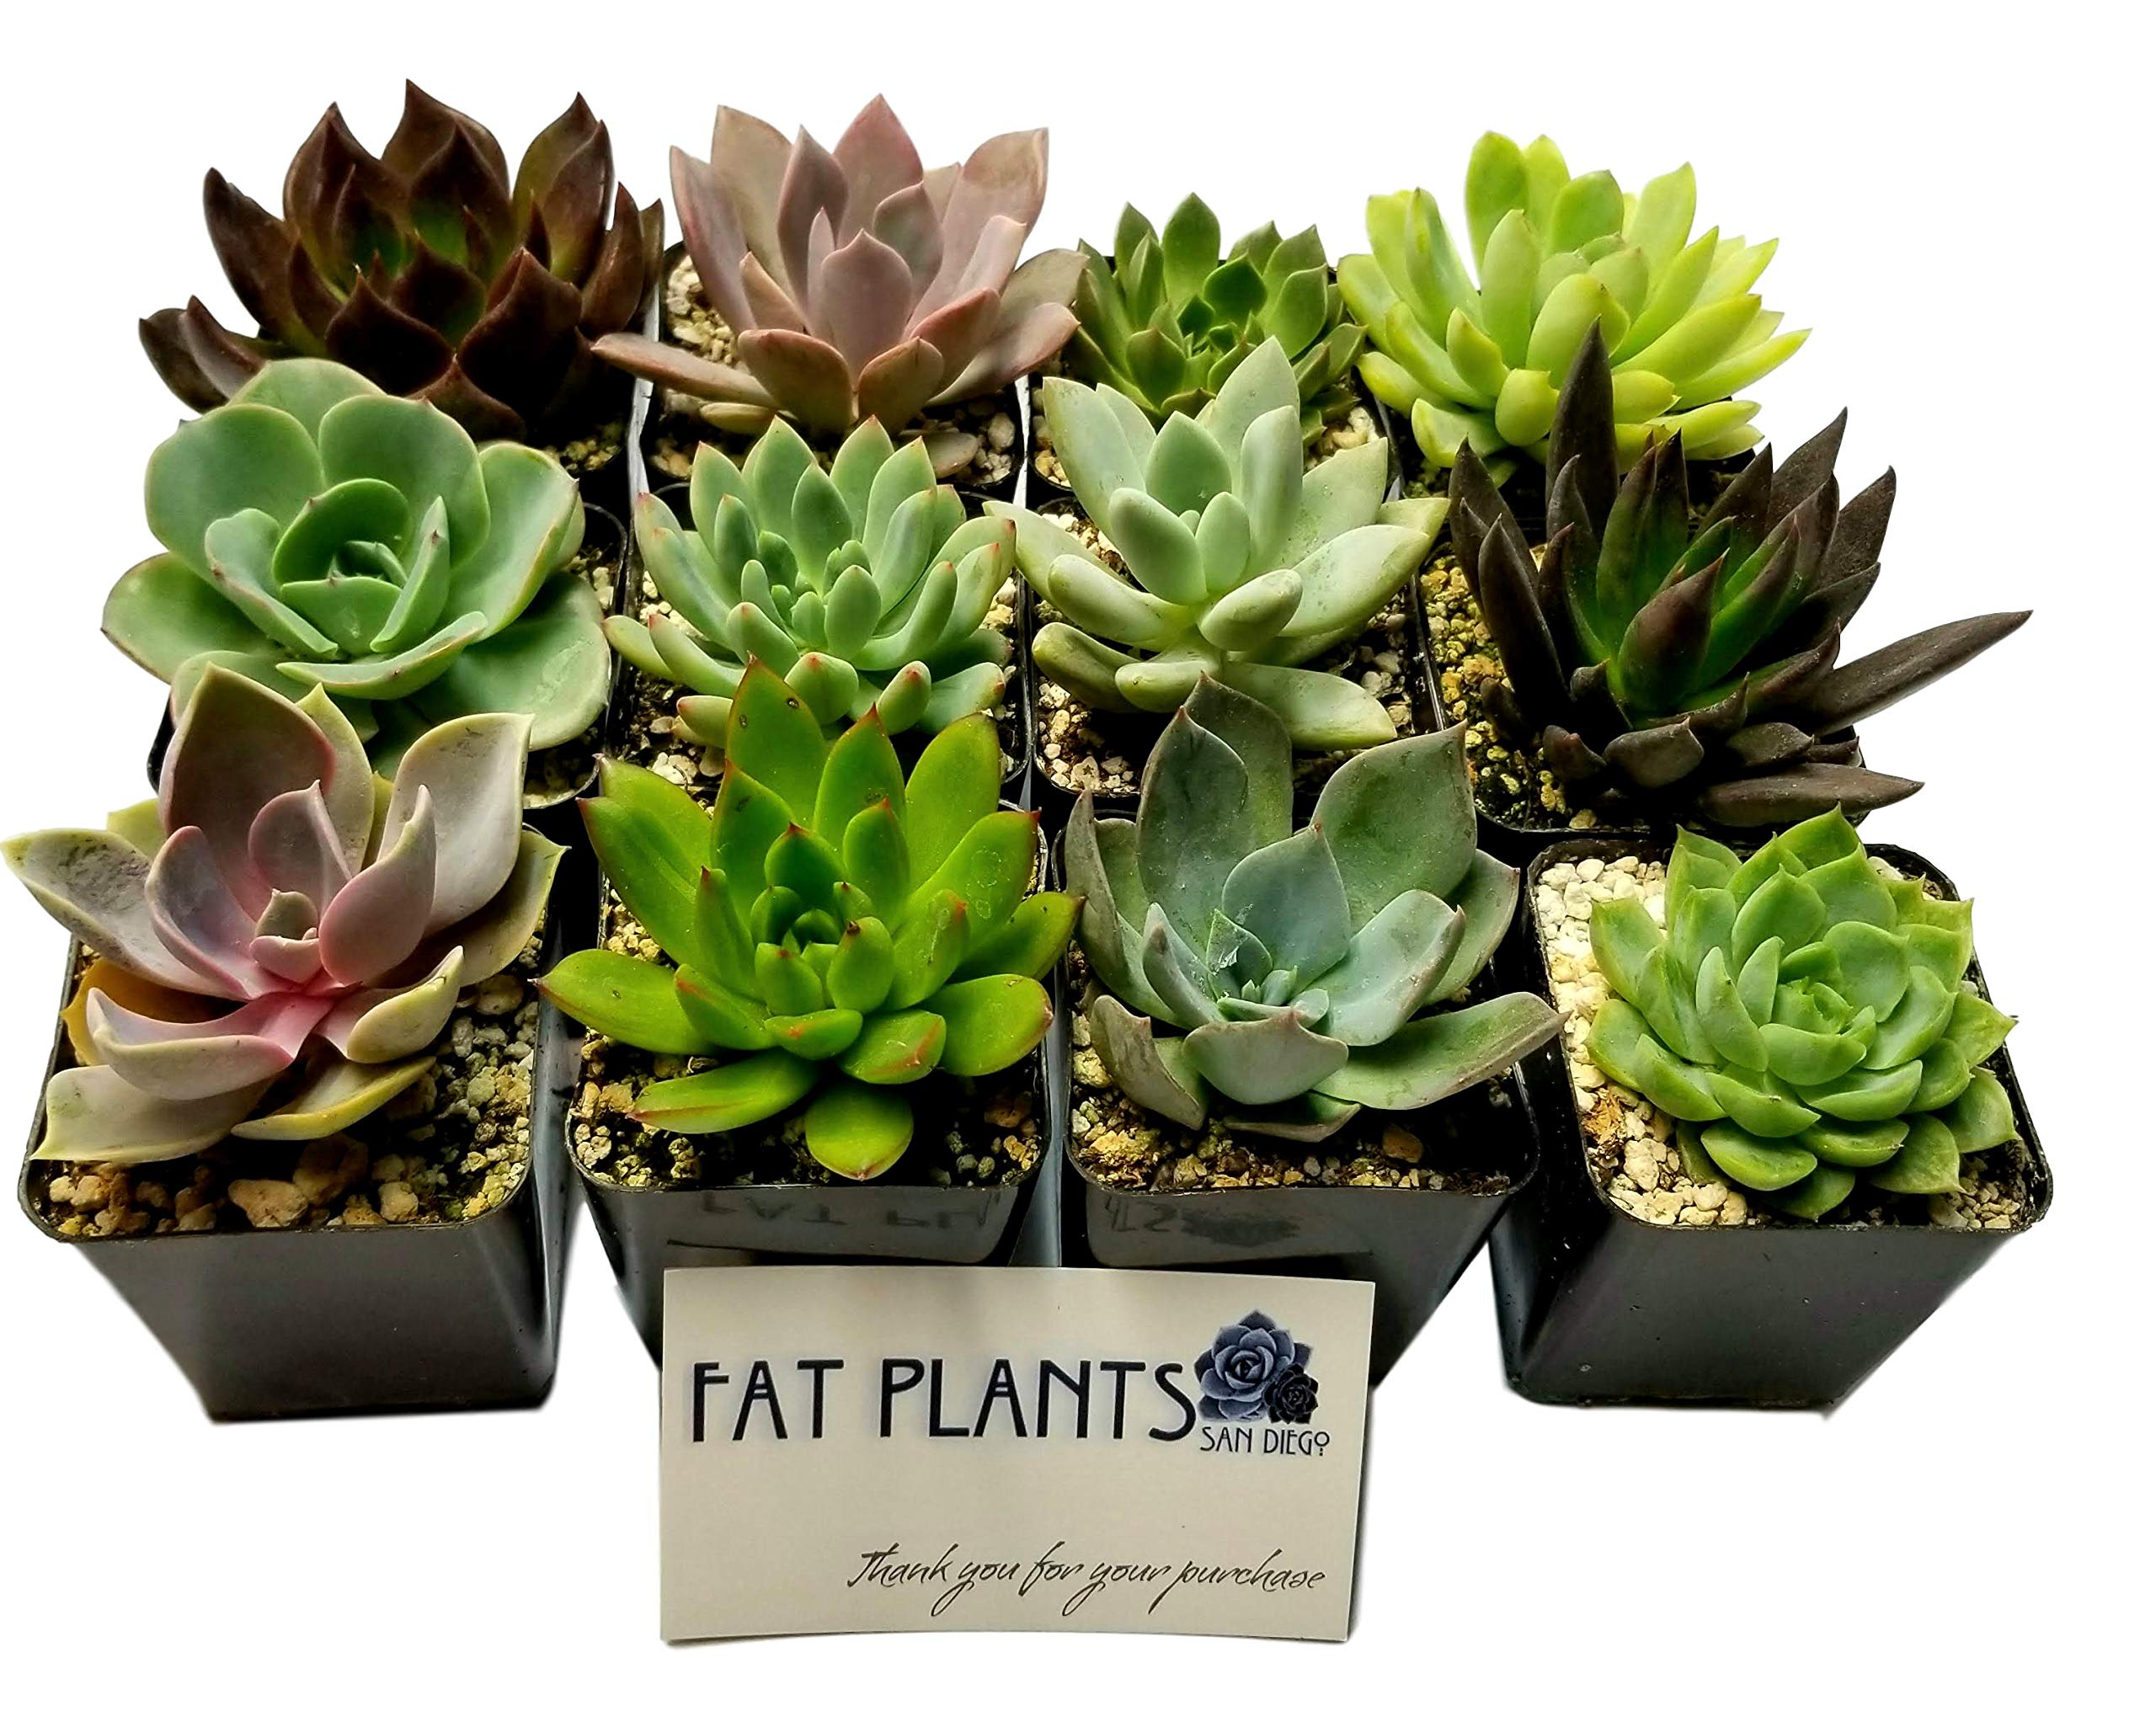 Fat Plants San Diego 2.5 Inch Wedding Rosette Succulent Plants (12) by Fat Plants San Diego